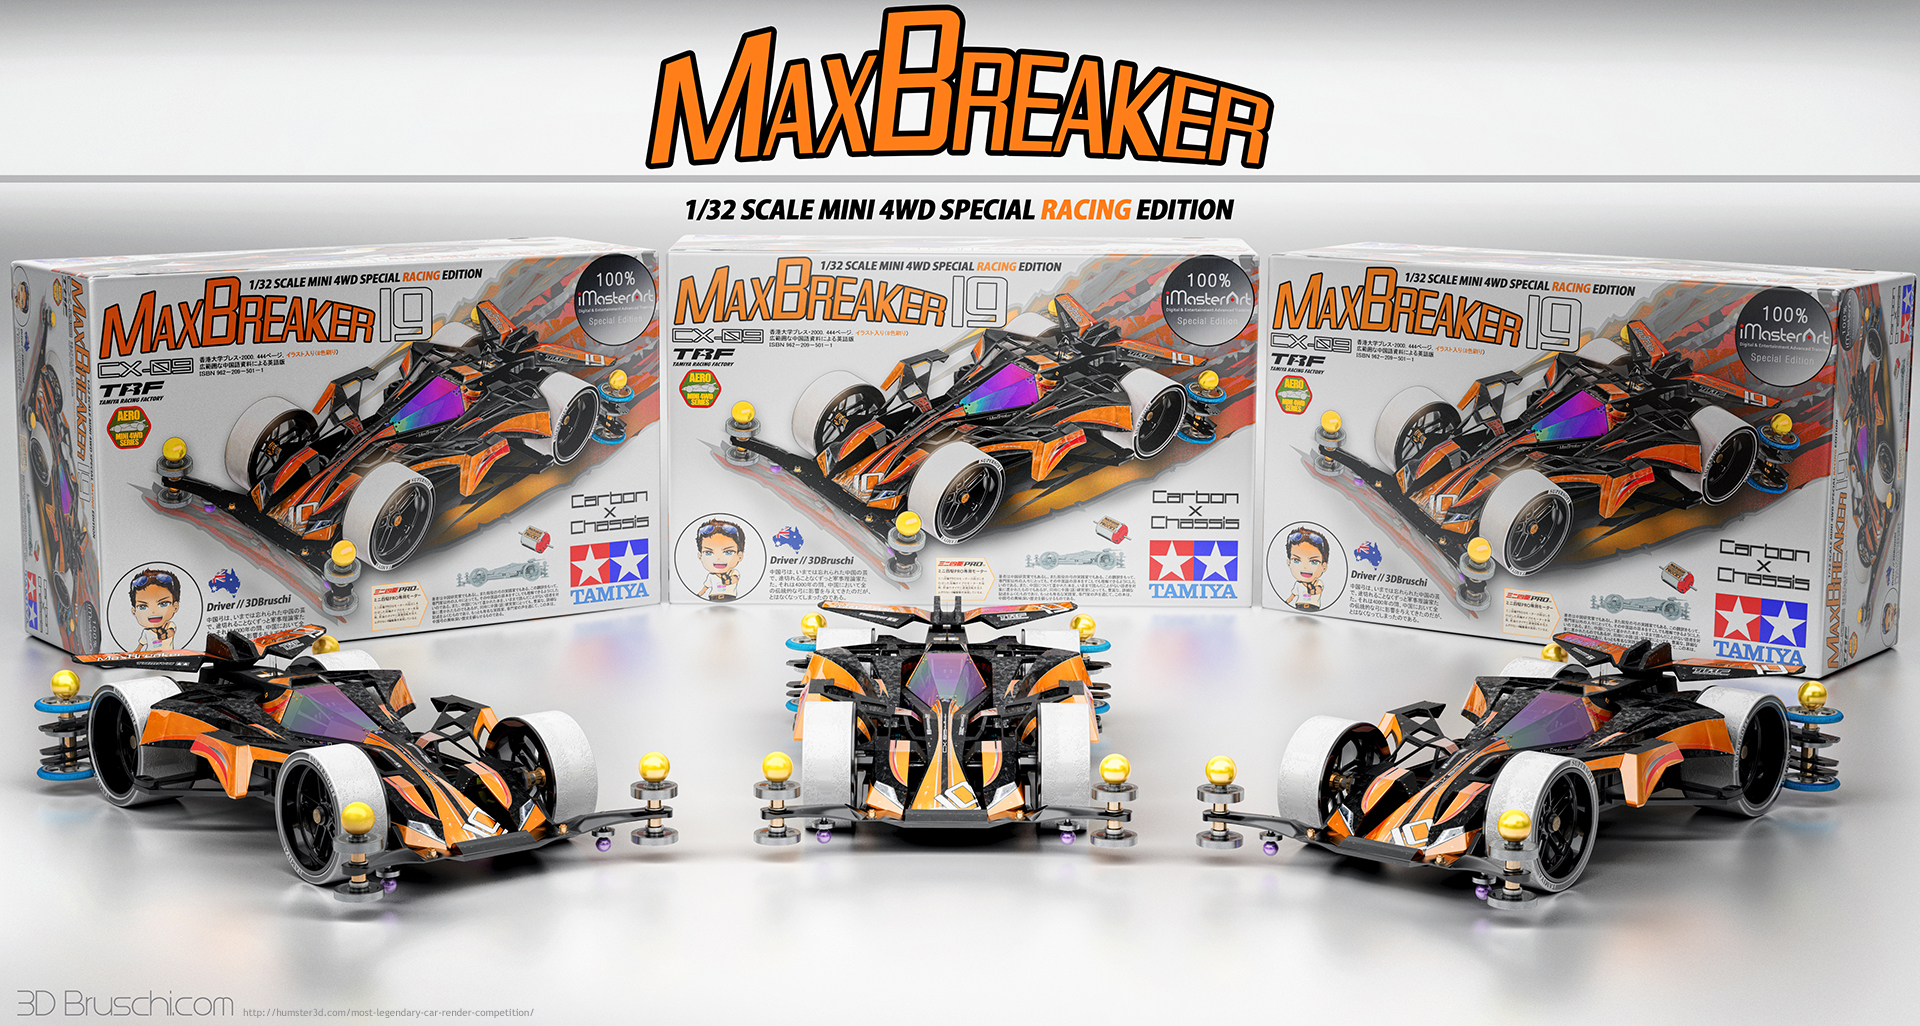 Mini 4WD Max Breaker Edition